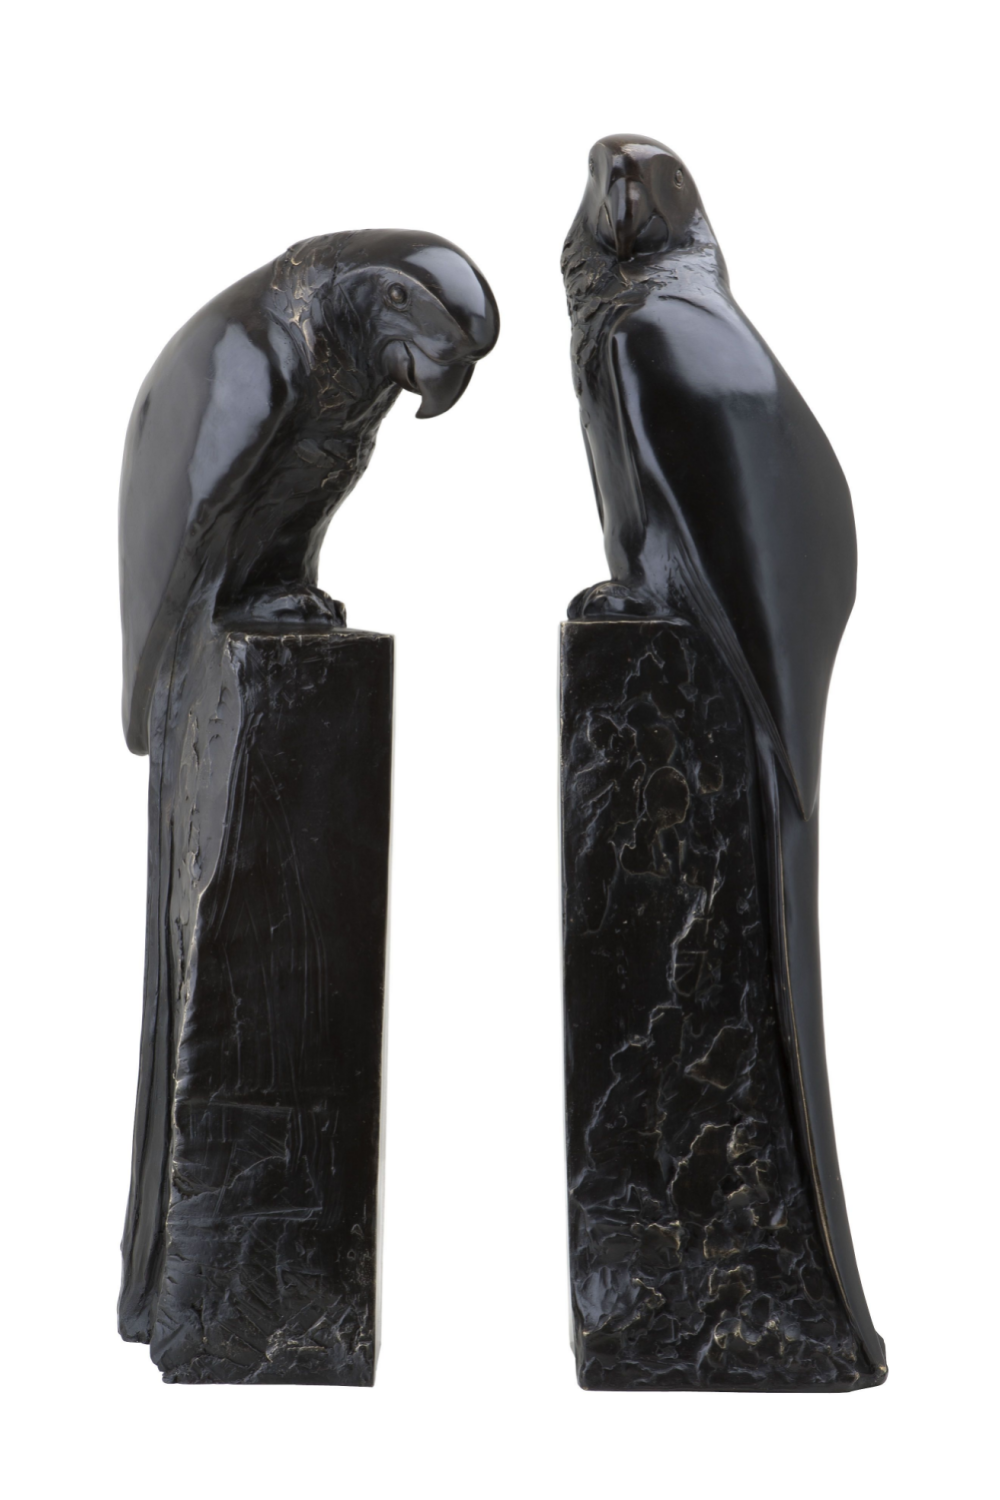 Bronze Bookend Set of 2 | Eichholtz Perroquet  | #1 Eichholtz Online Retailer